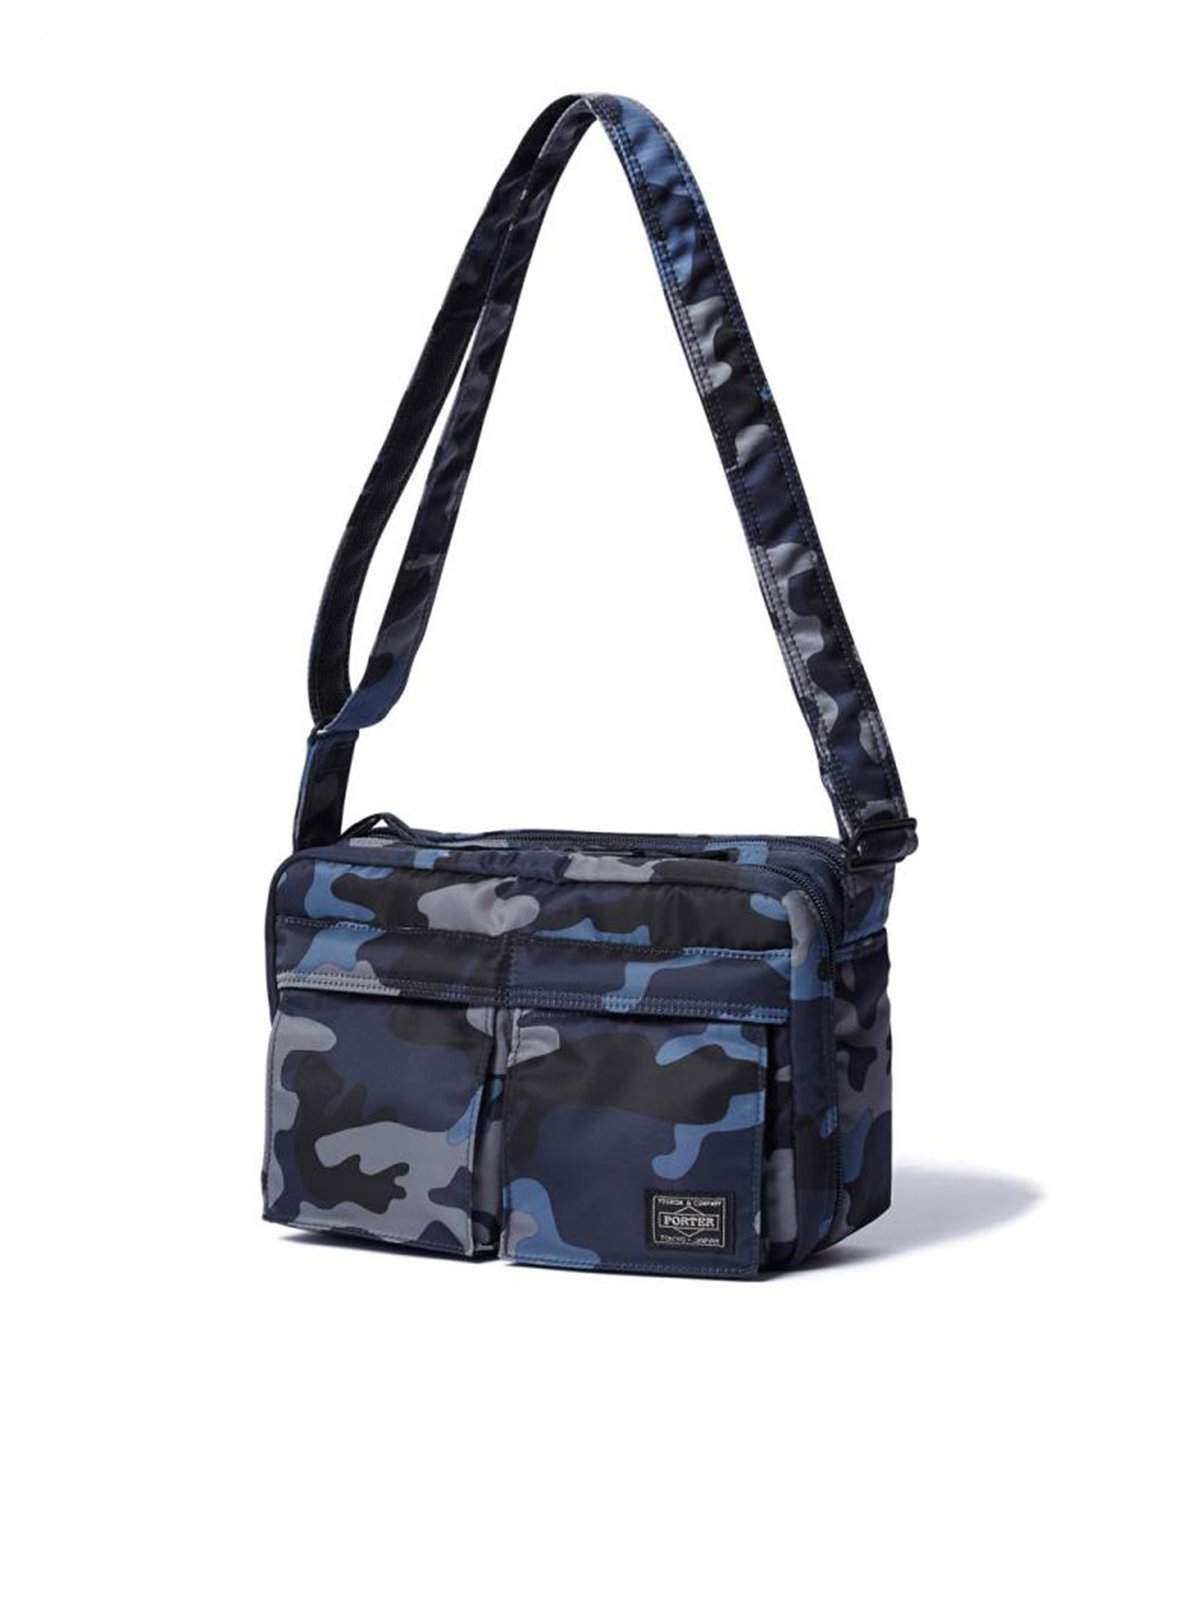 6c874d8a7f Porter-Yoshida   Co. Shoulder Bag S Jungle Dark Navy - MORE by ...